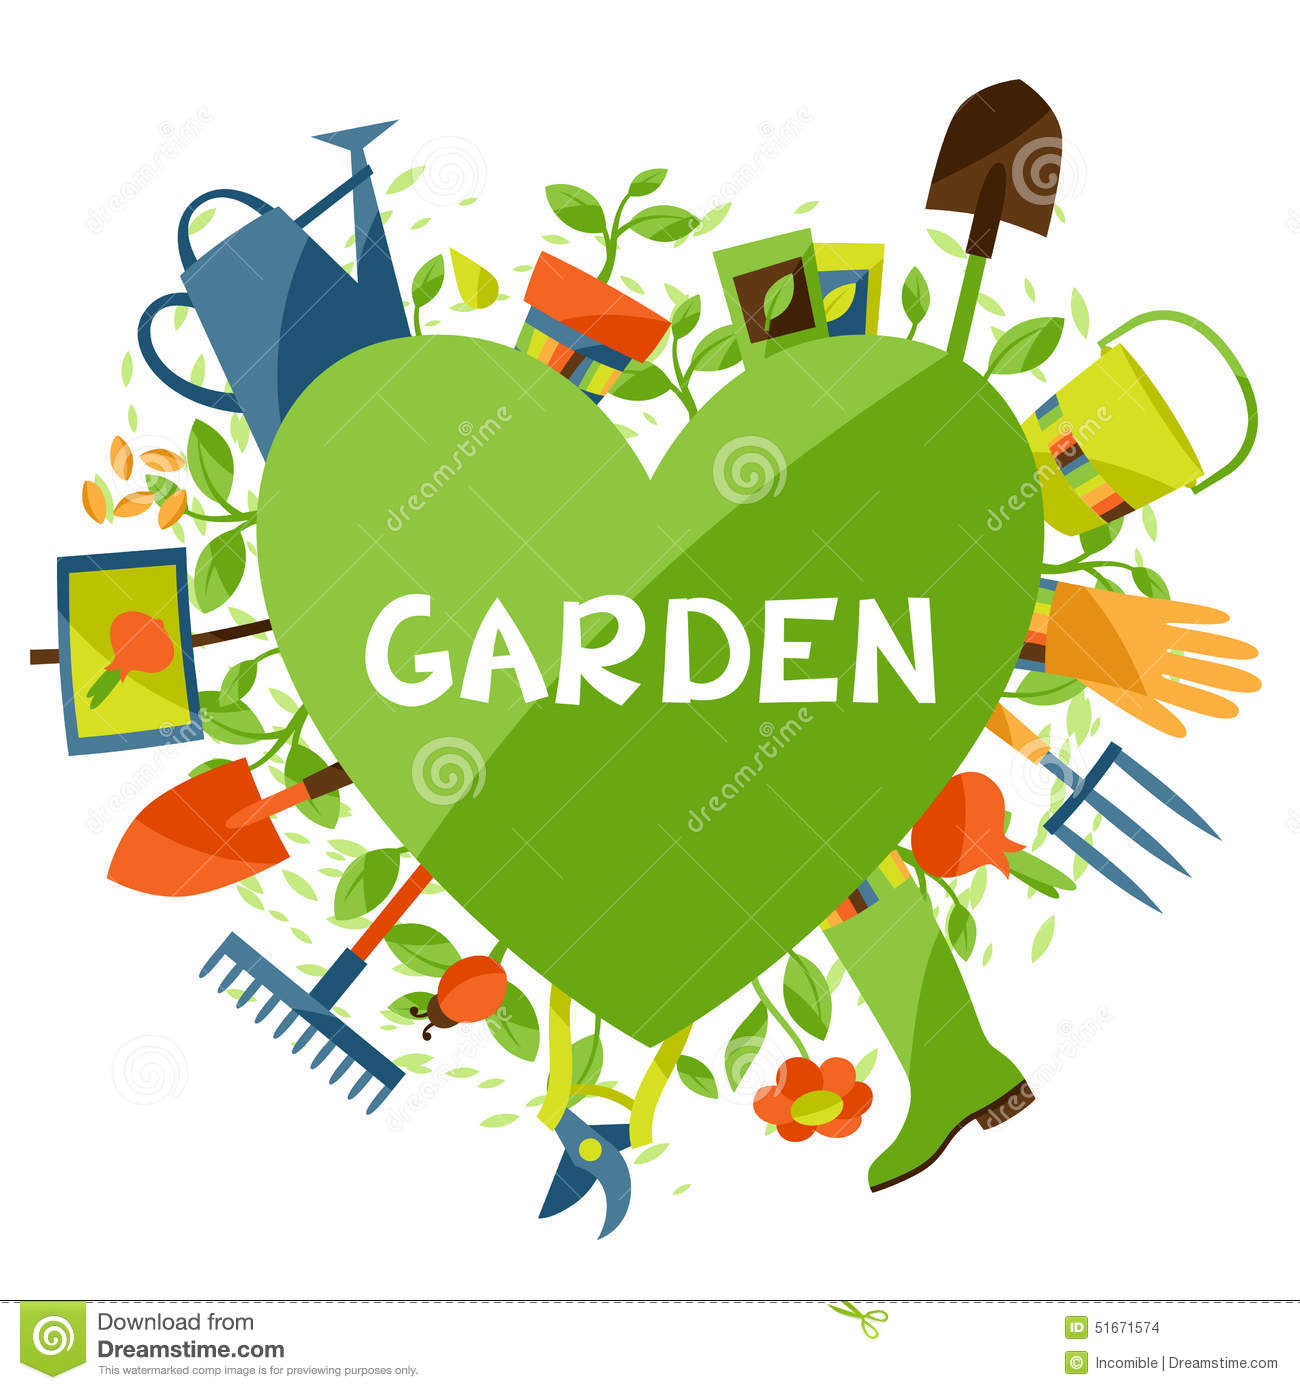 royalty free vector download background with garden design elements - Garden Design Elements